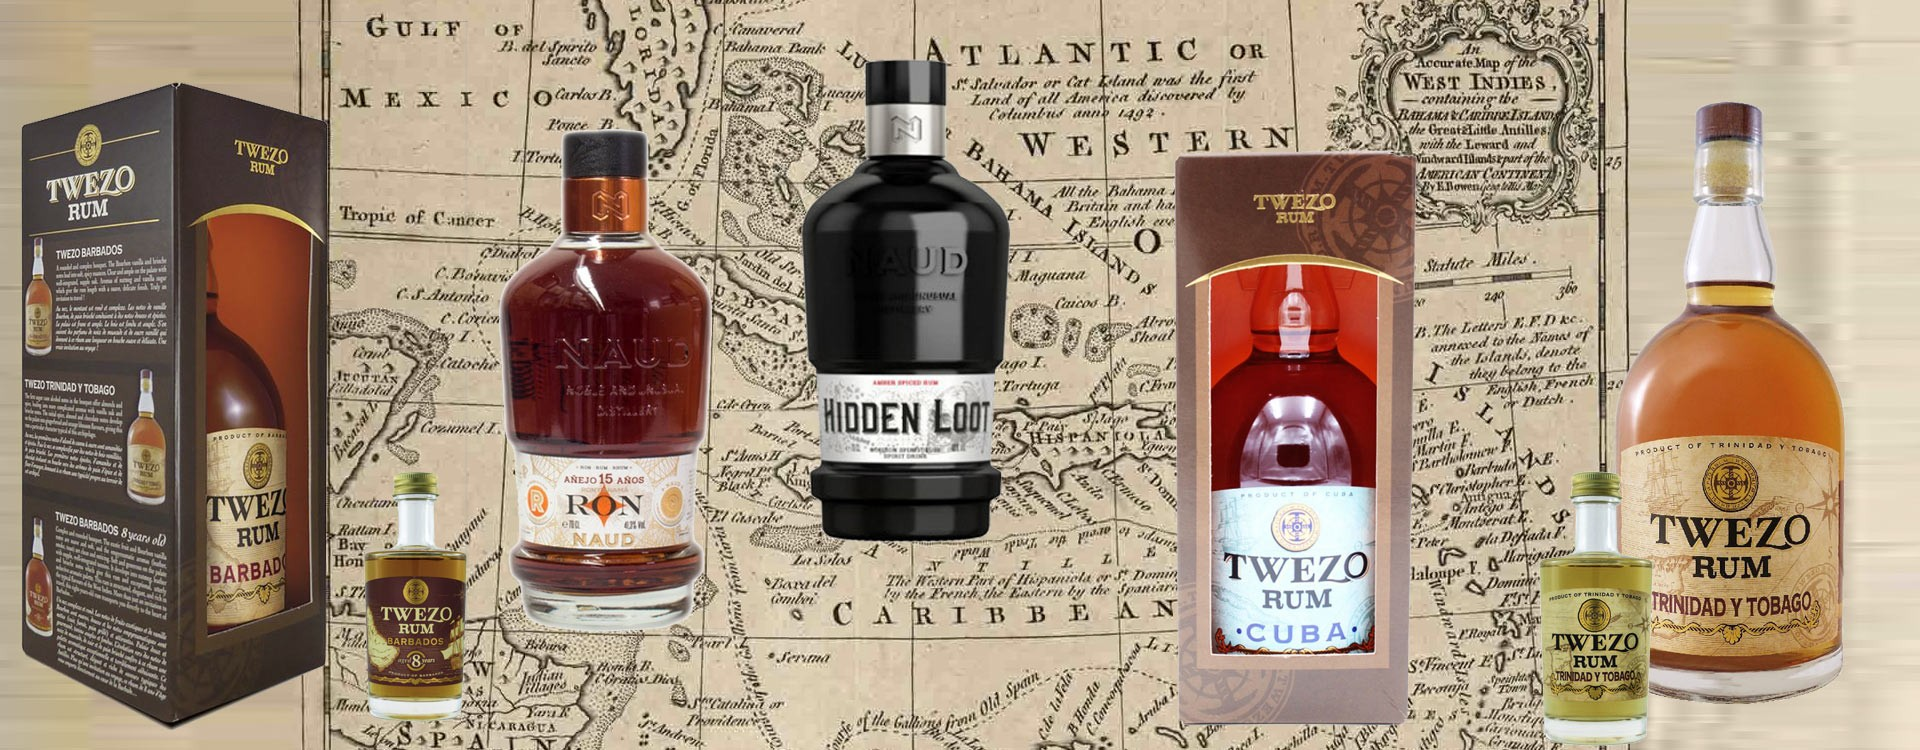 Great Rums from Trinidad, Cuba, Barbados, by Swiss and French Distilleries